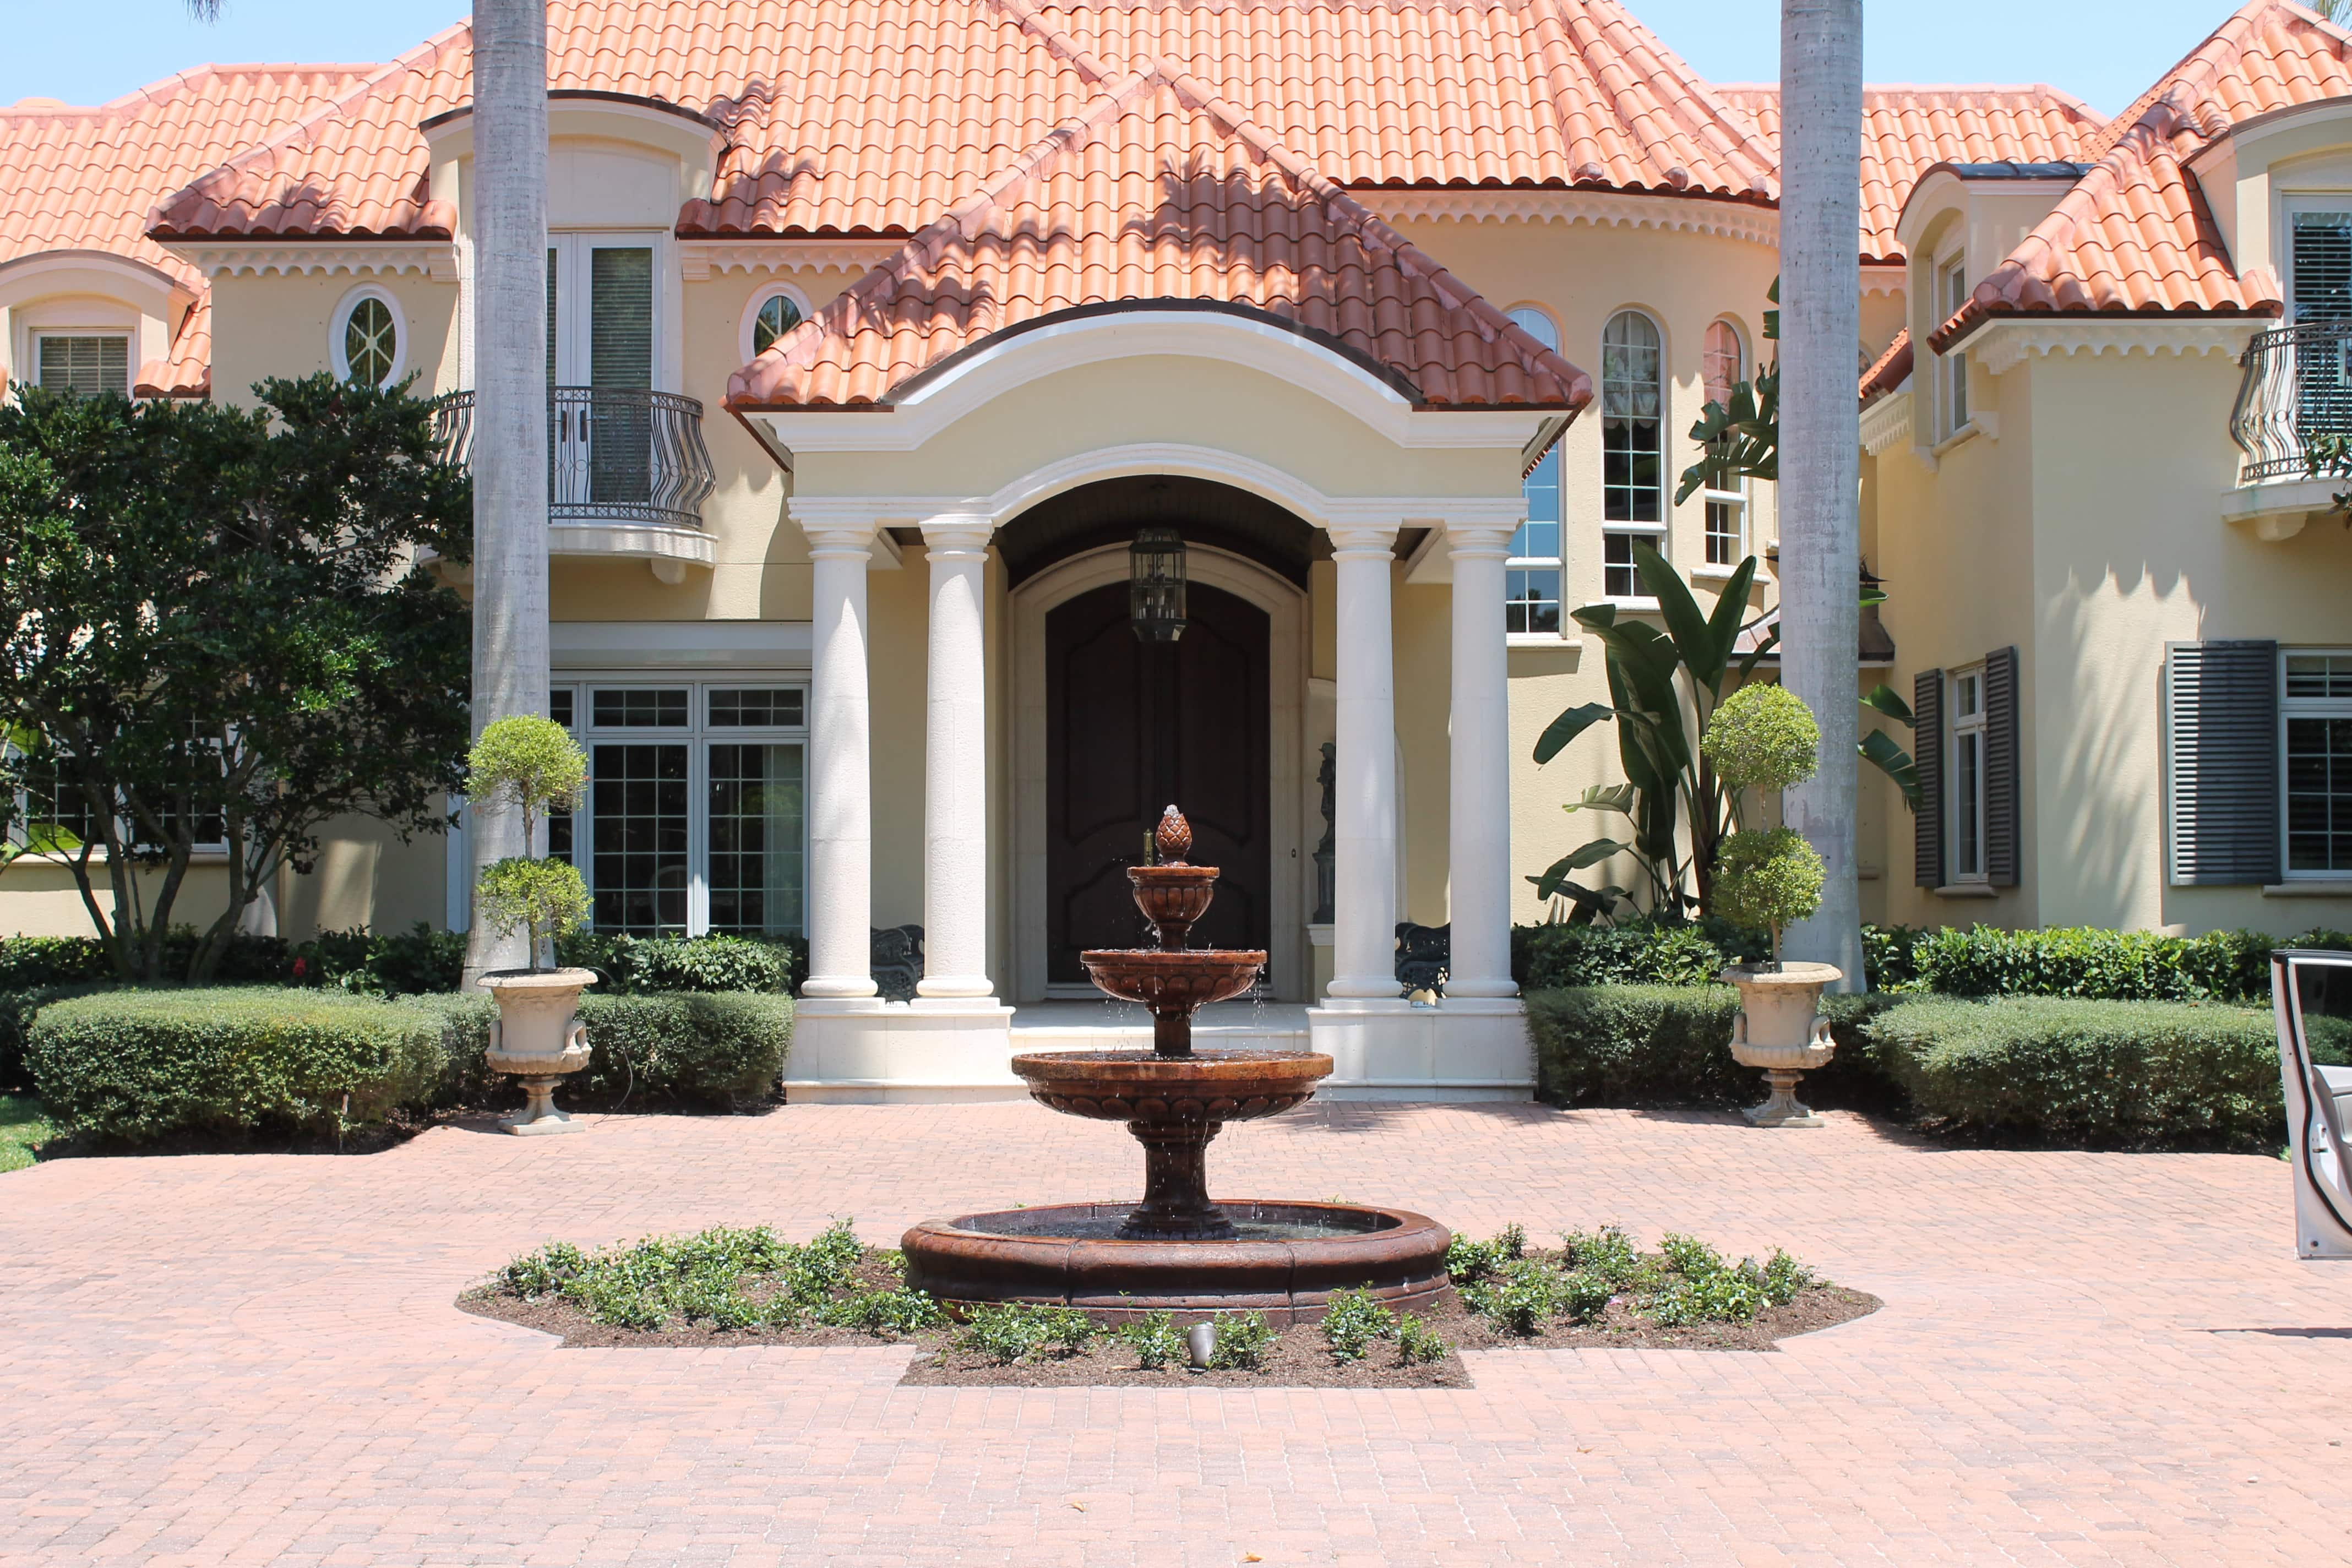 Waterfalls & Fountain Systems